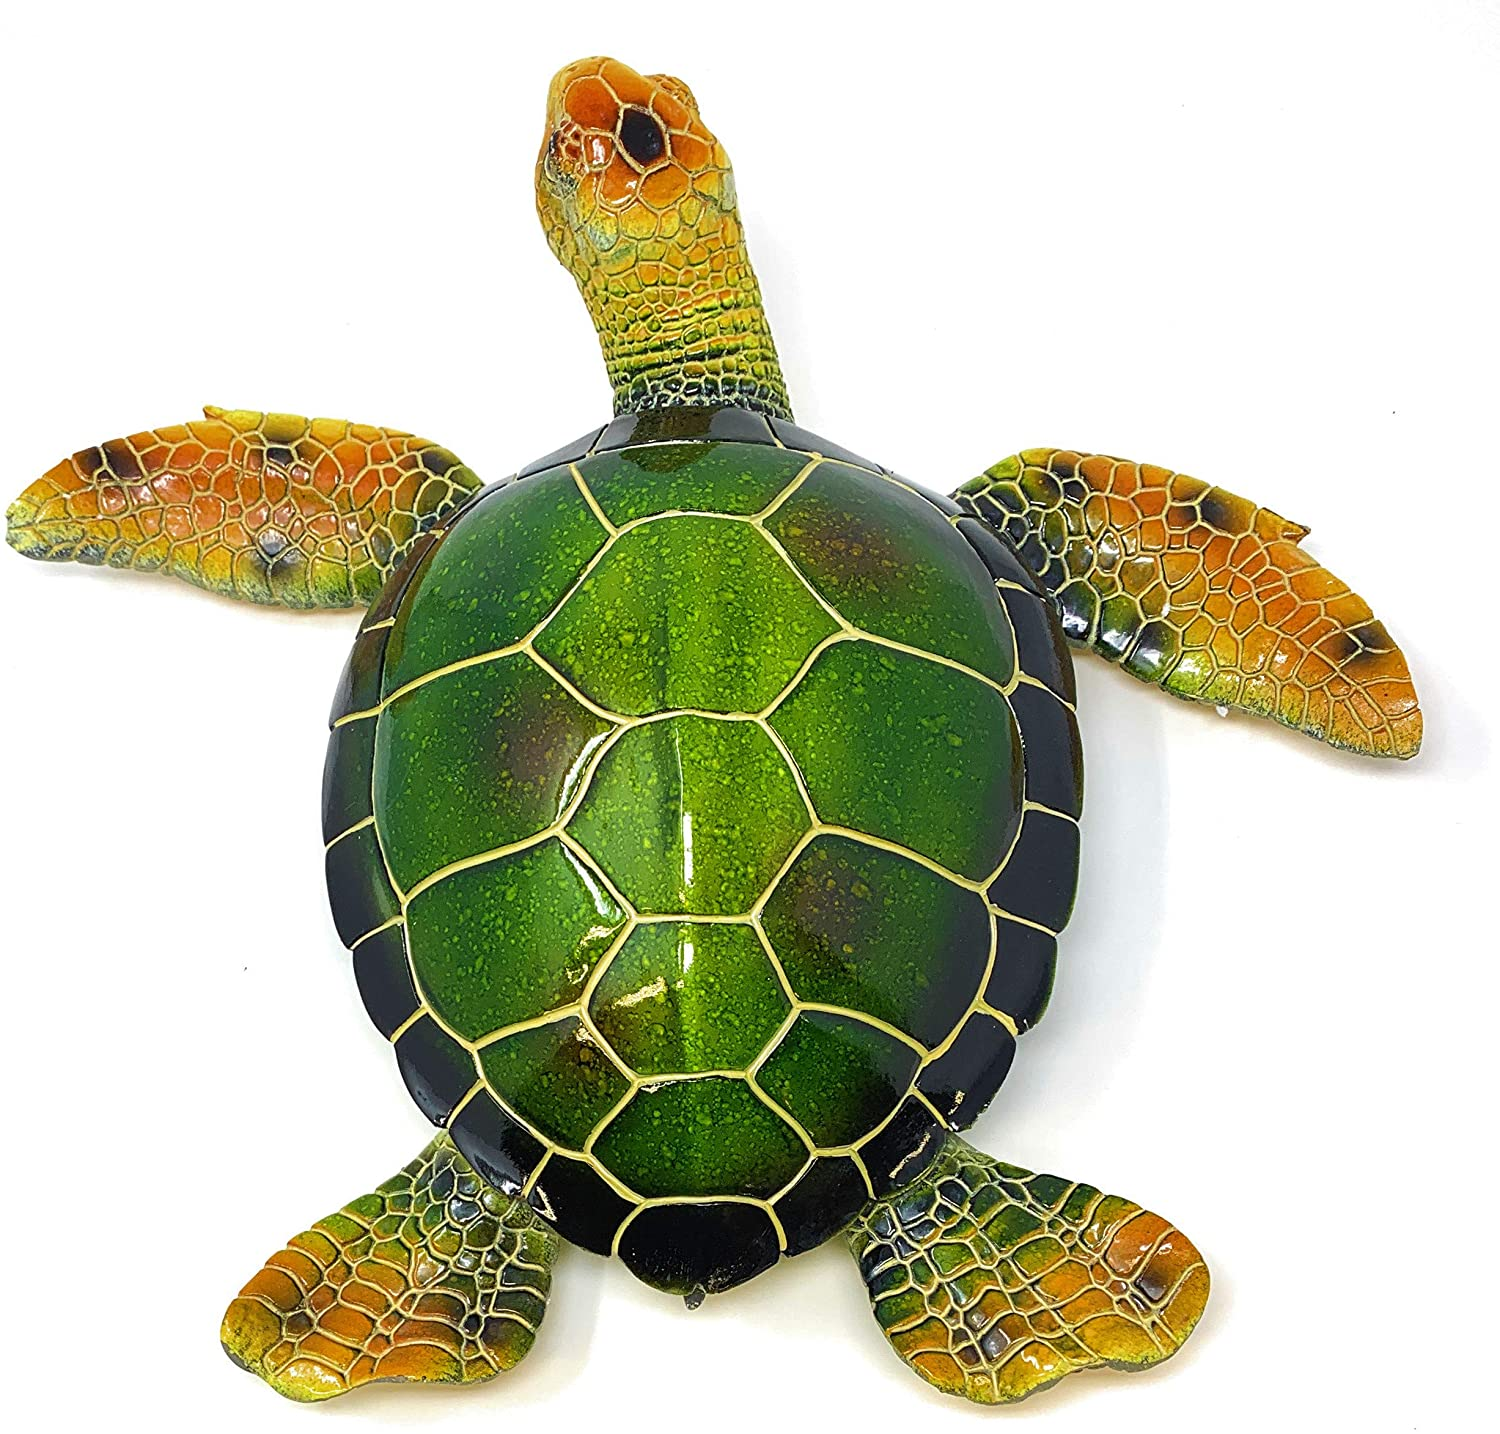 Globe Imports Oversized Green Sea Turtle Statue, Made of Resin Indoor Outdoor Decor, 16 Inches Wide X 15 Inches Long